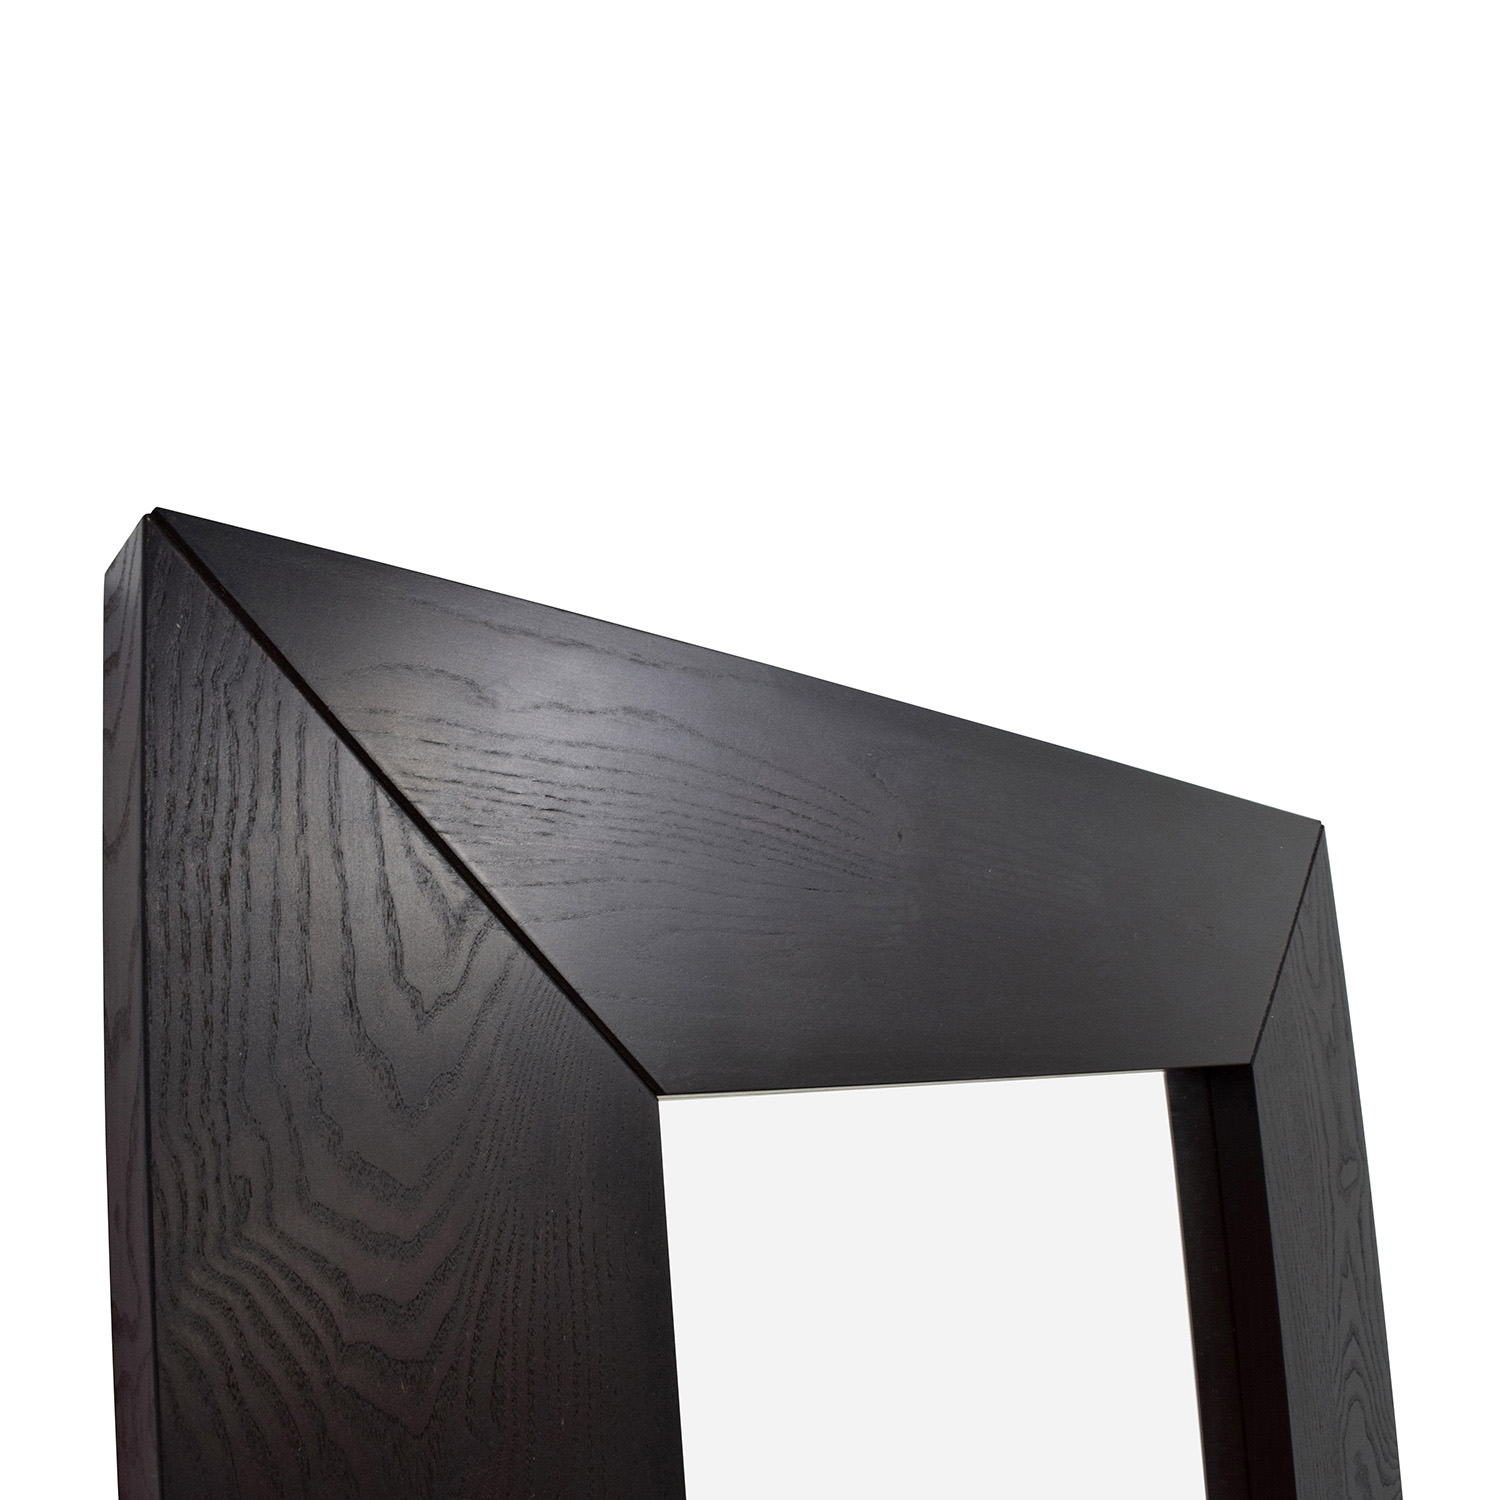 Freestanding or Mountable Large Mirror dimensions